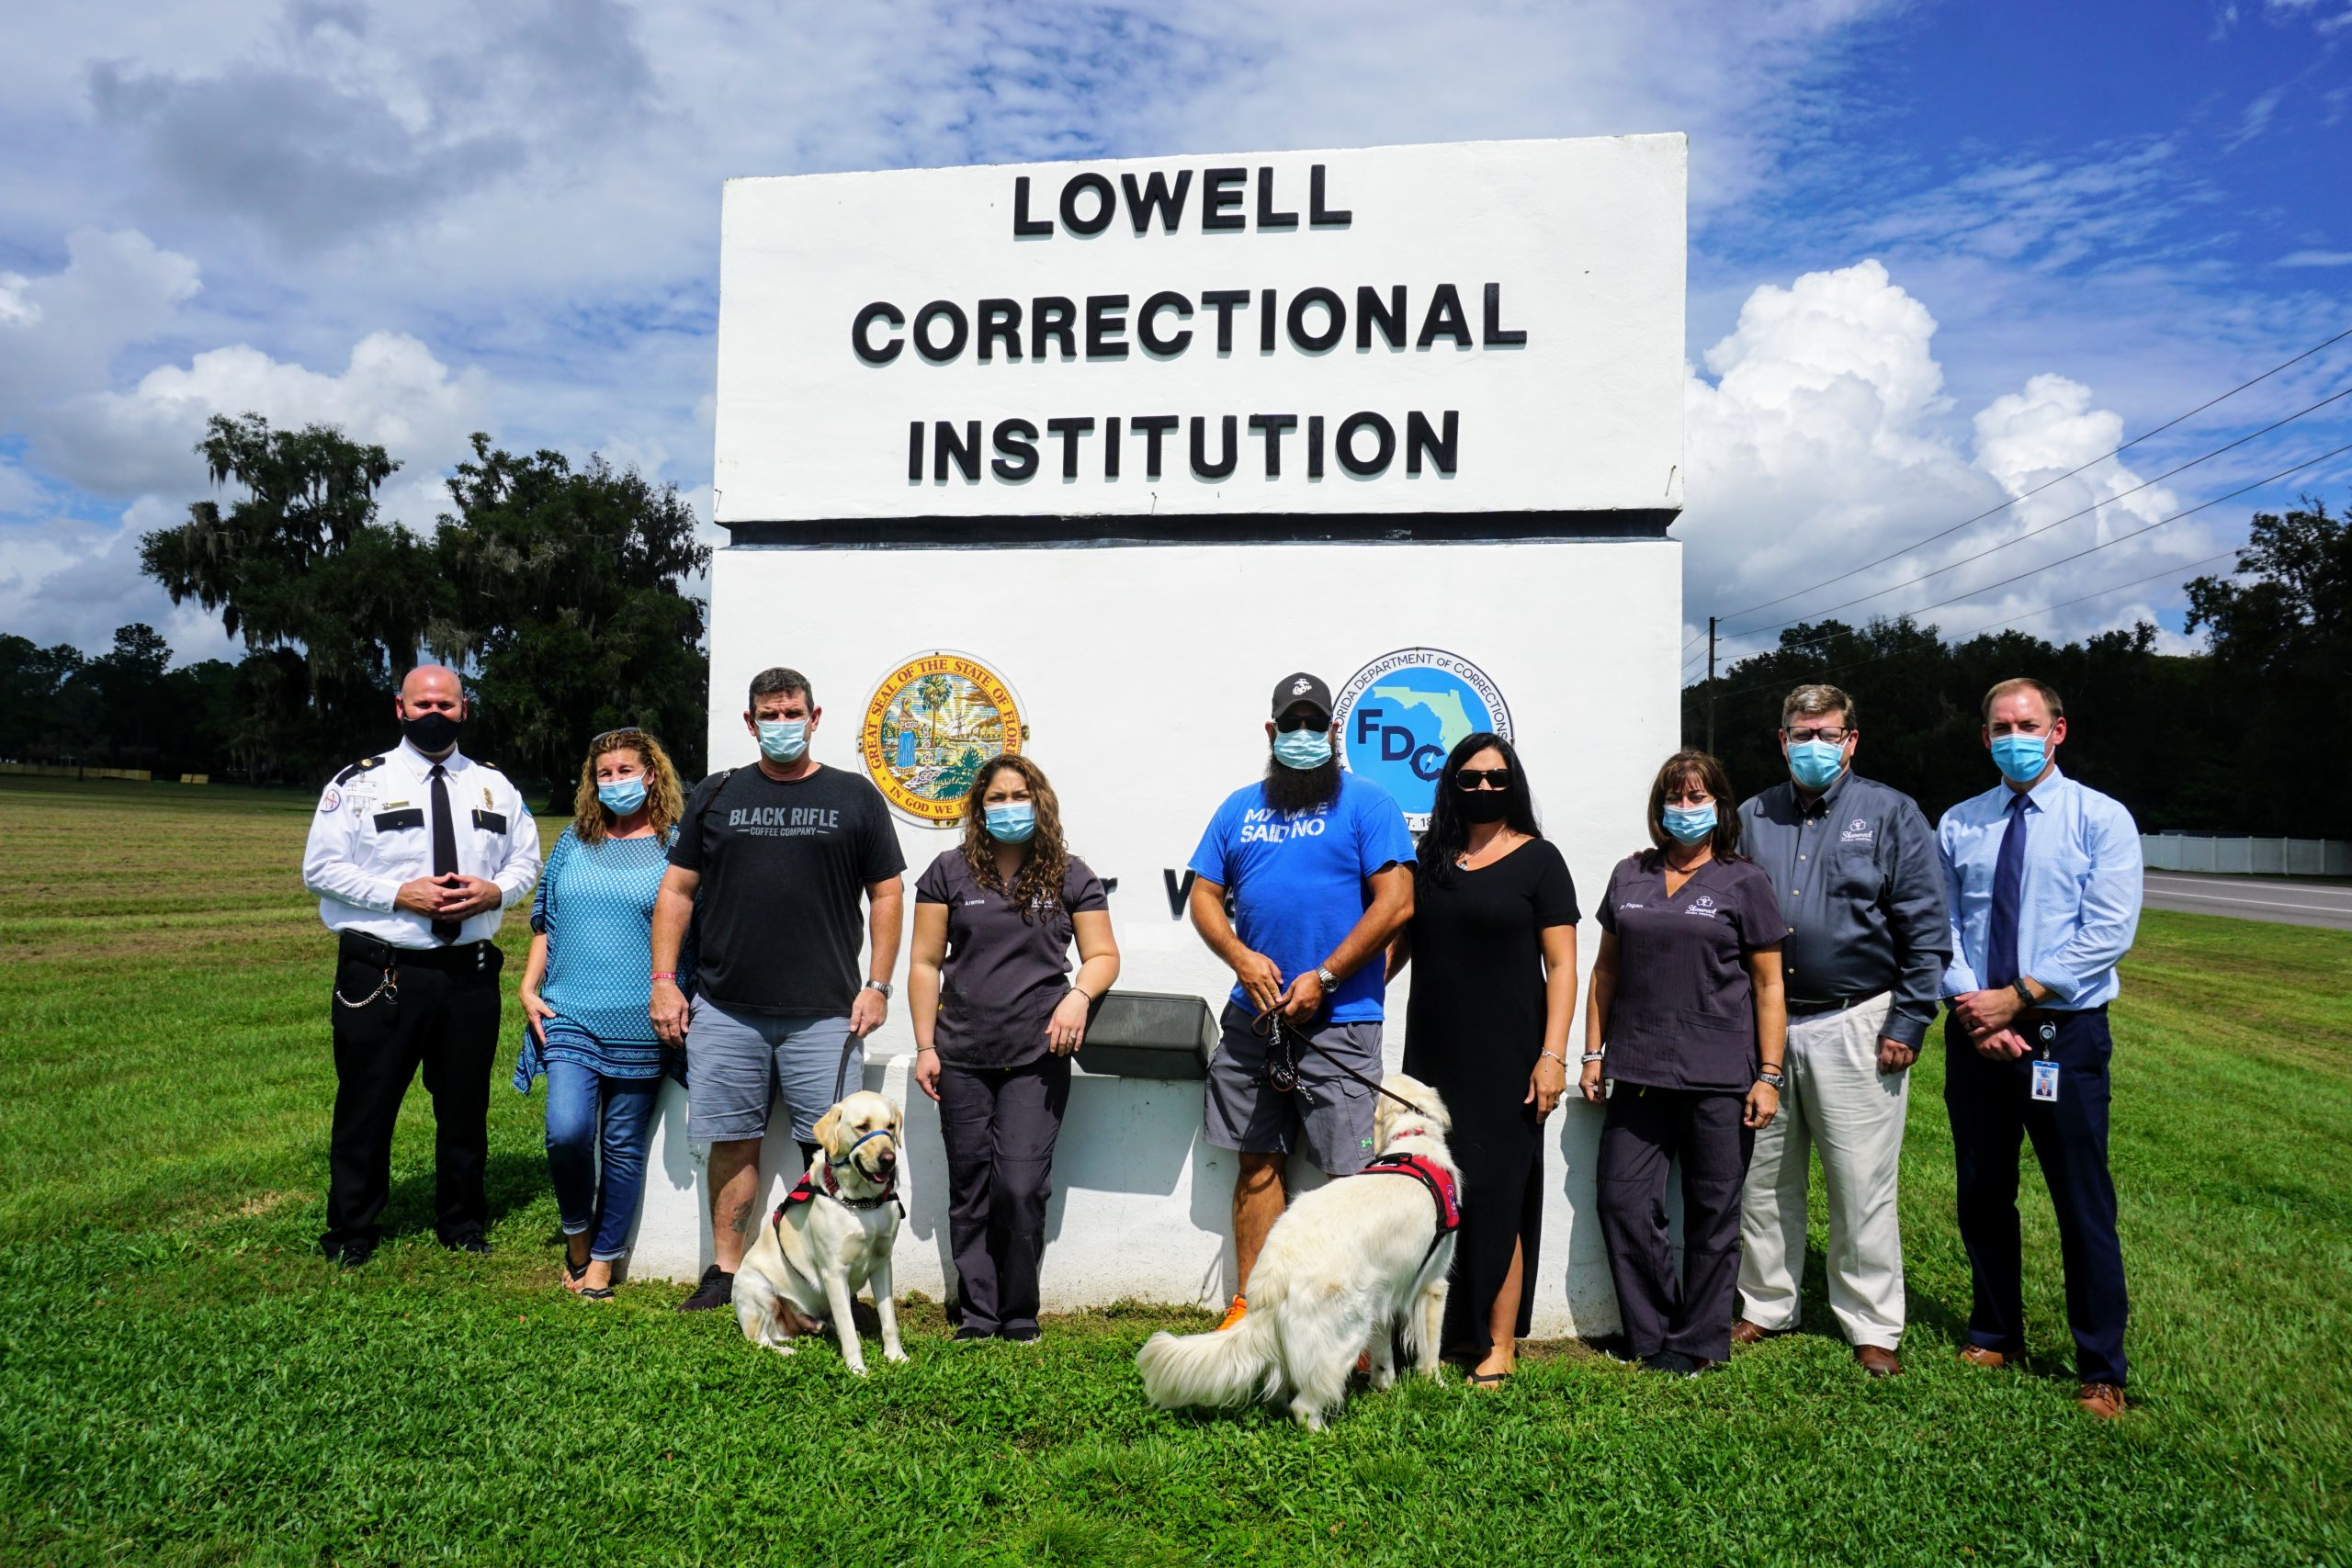 Julie's Update Lowell Correctional Institution